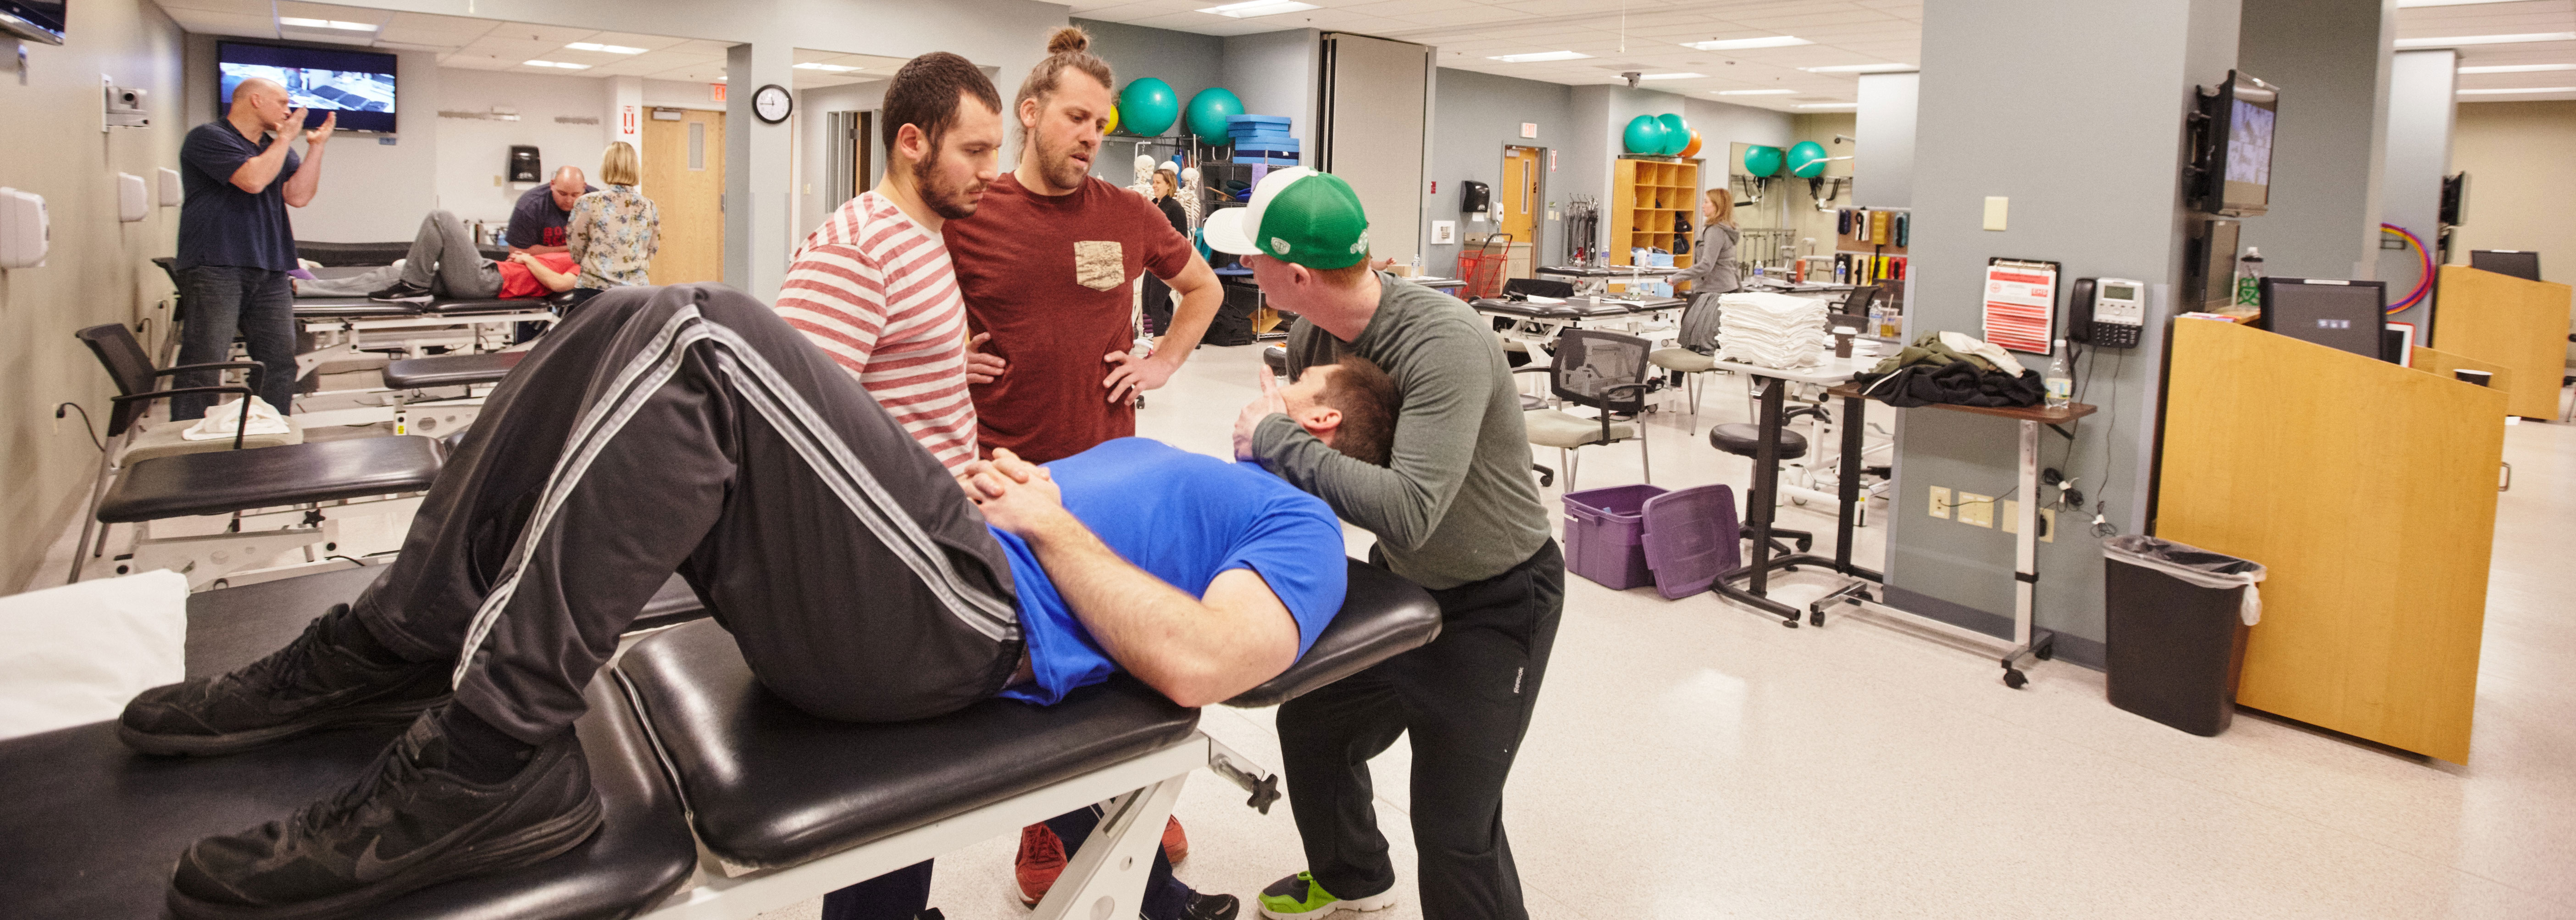 Some Common Physical Therapy Products